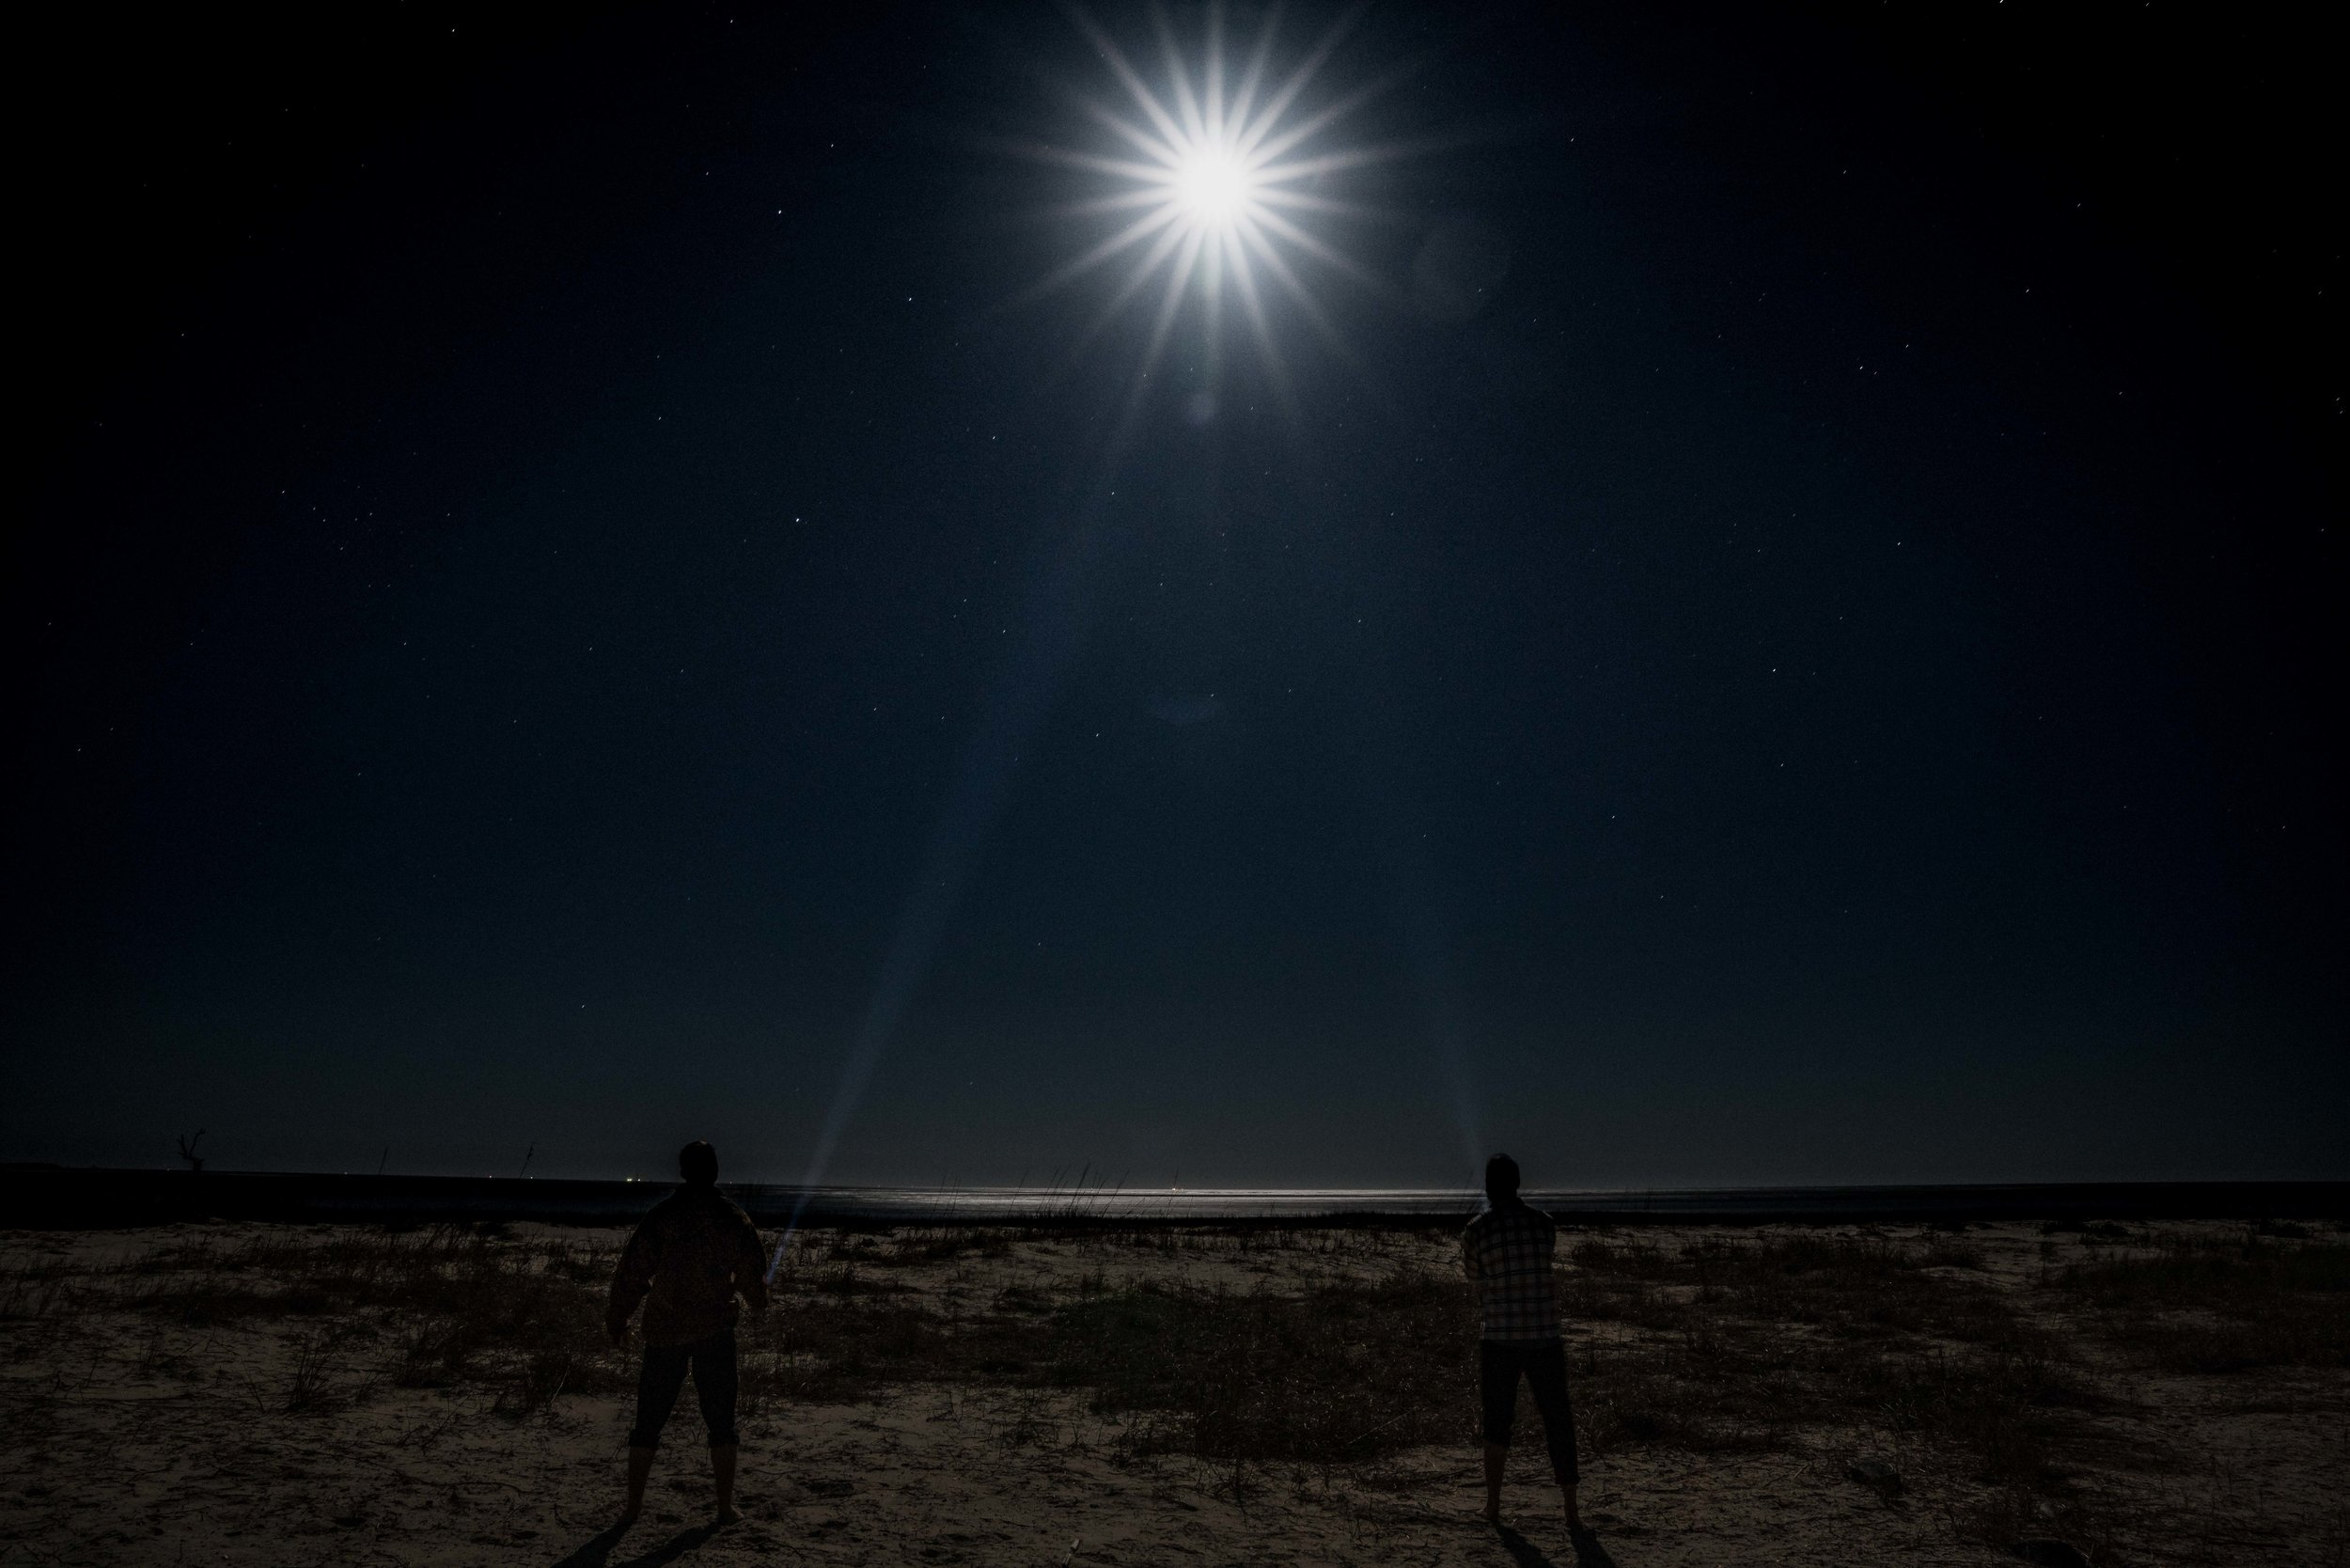 The Snow moon over Little Tybee Island via micahdeyoung.com